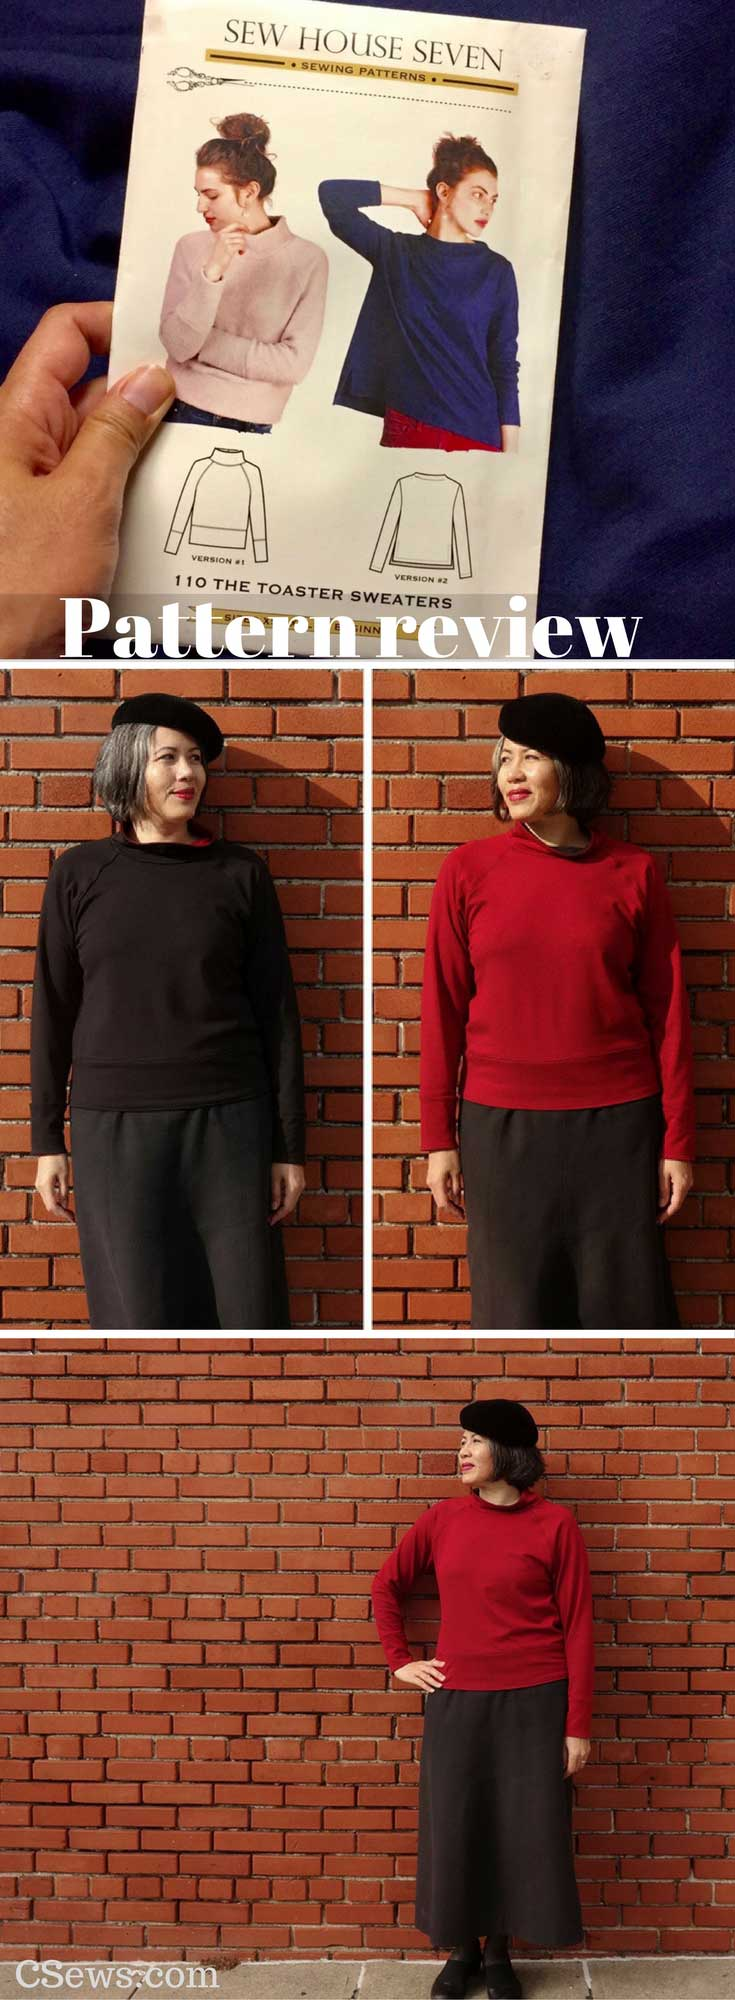 Pattern review - Toaster Sweater - Sew House Seven sewing pattern